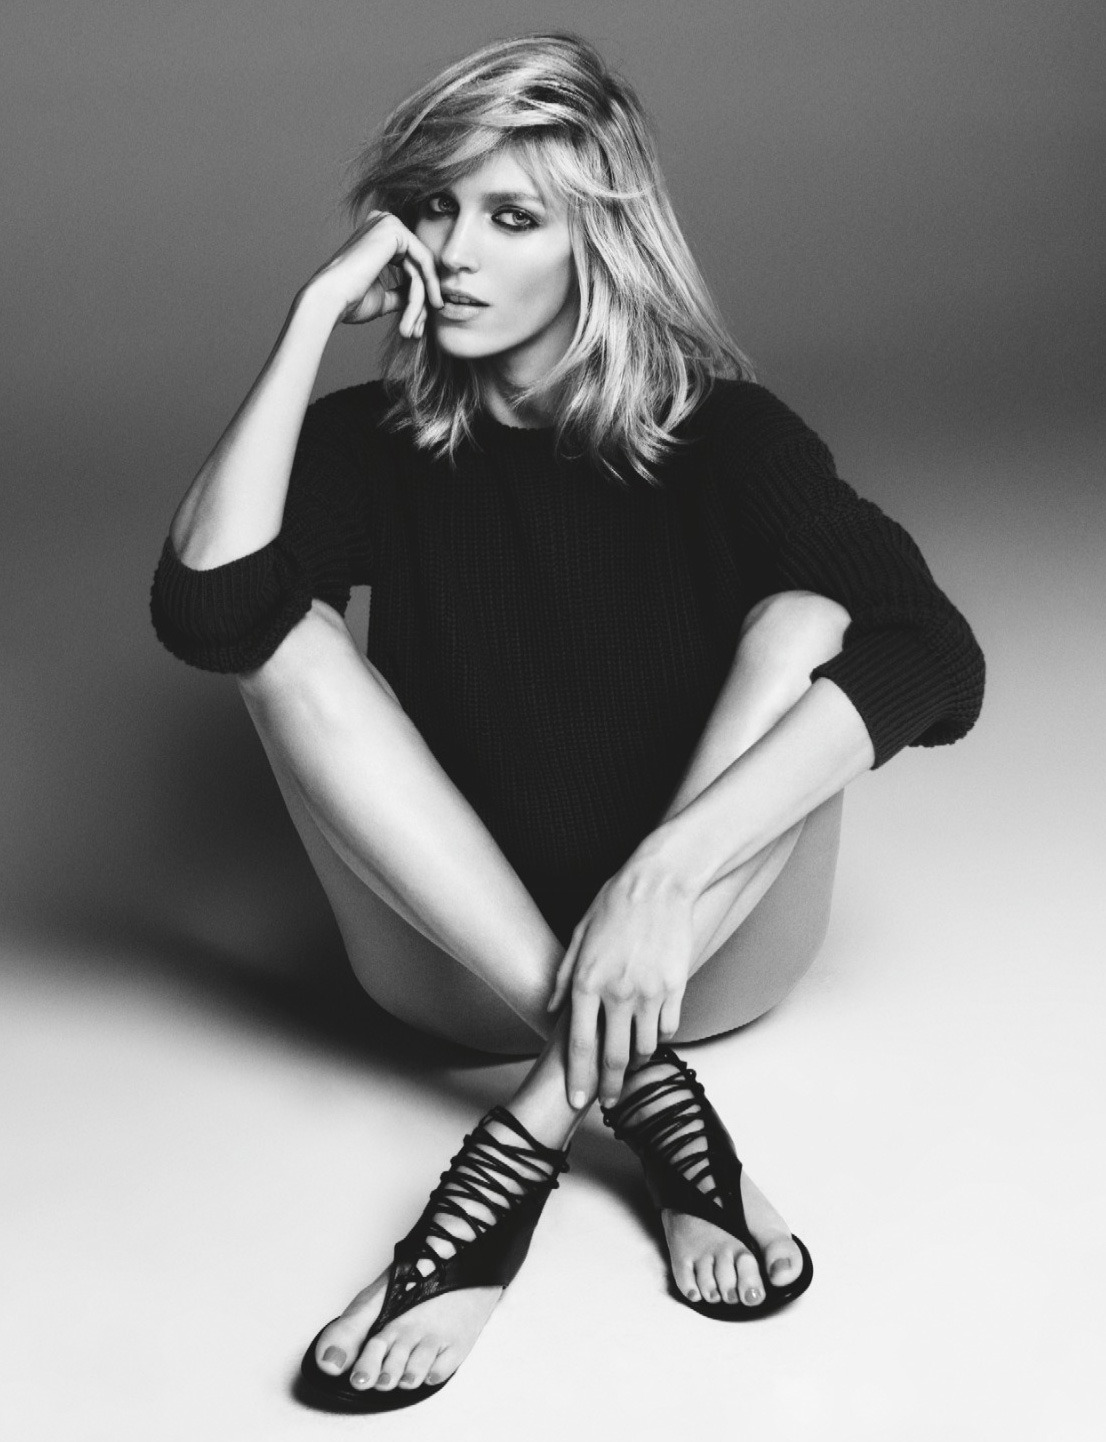 Giuseppe Zanotti for Anja Rubik Capsule Collection